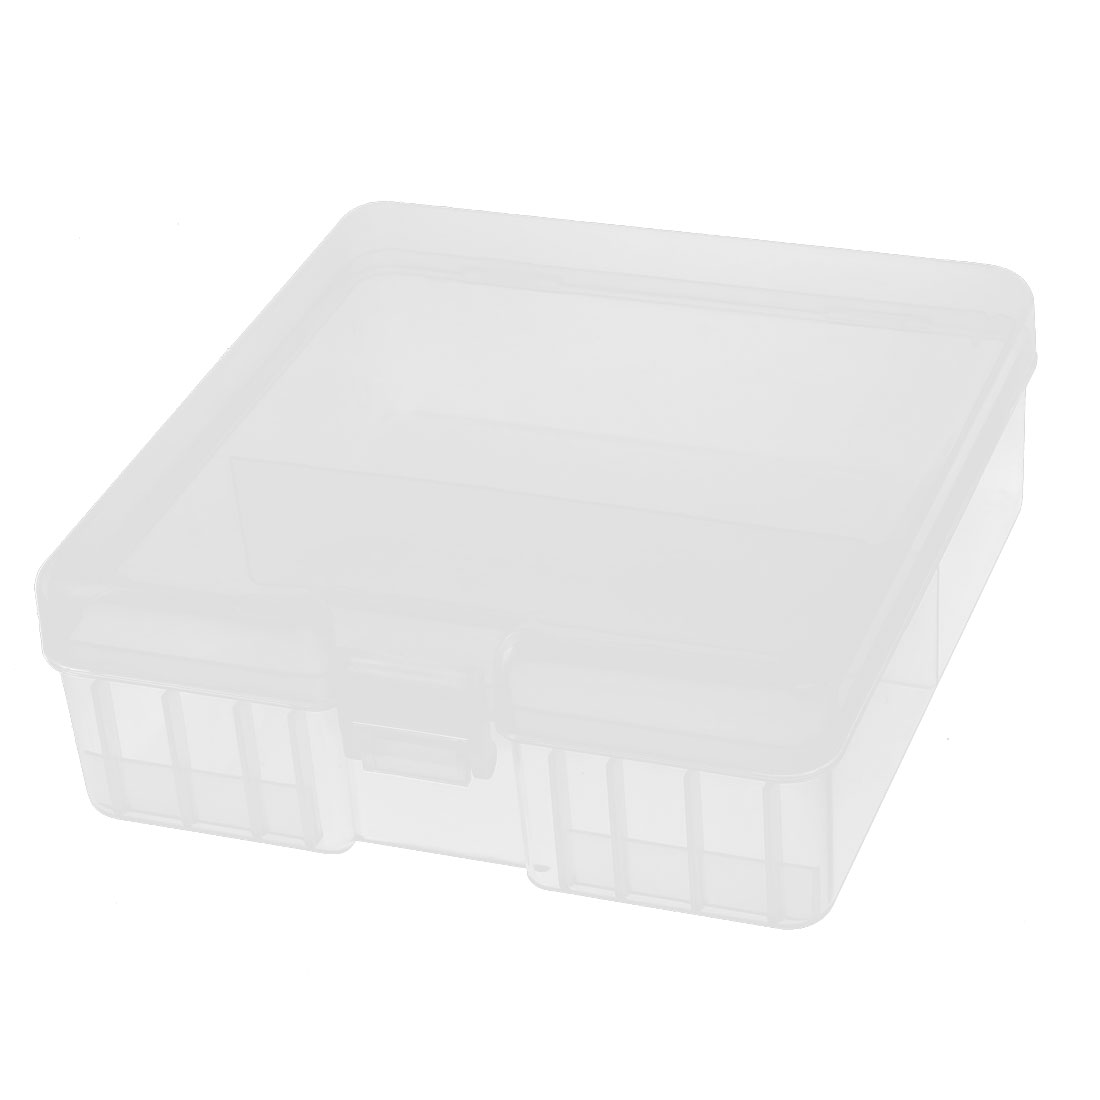 Clear Plastic Storage Box Case Container Organizer Holder for 100 x AA Battery